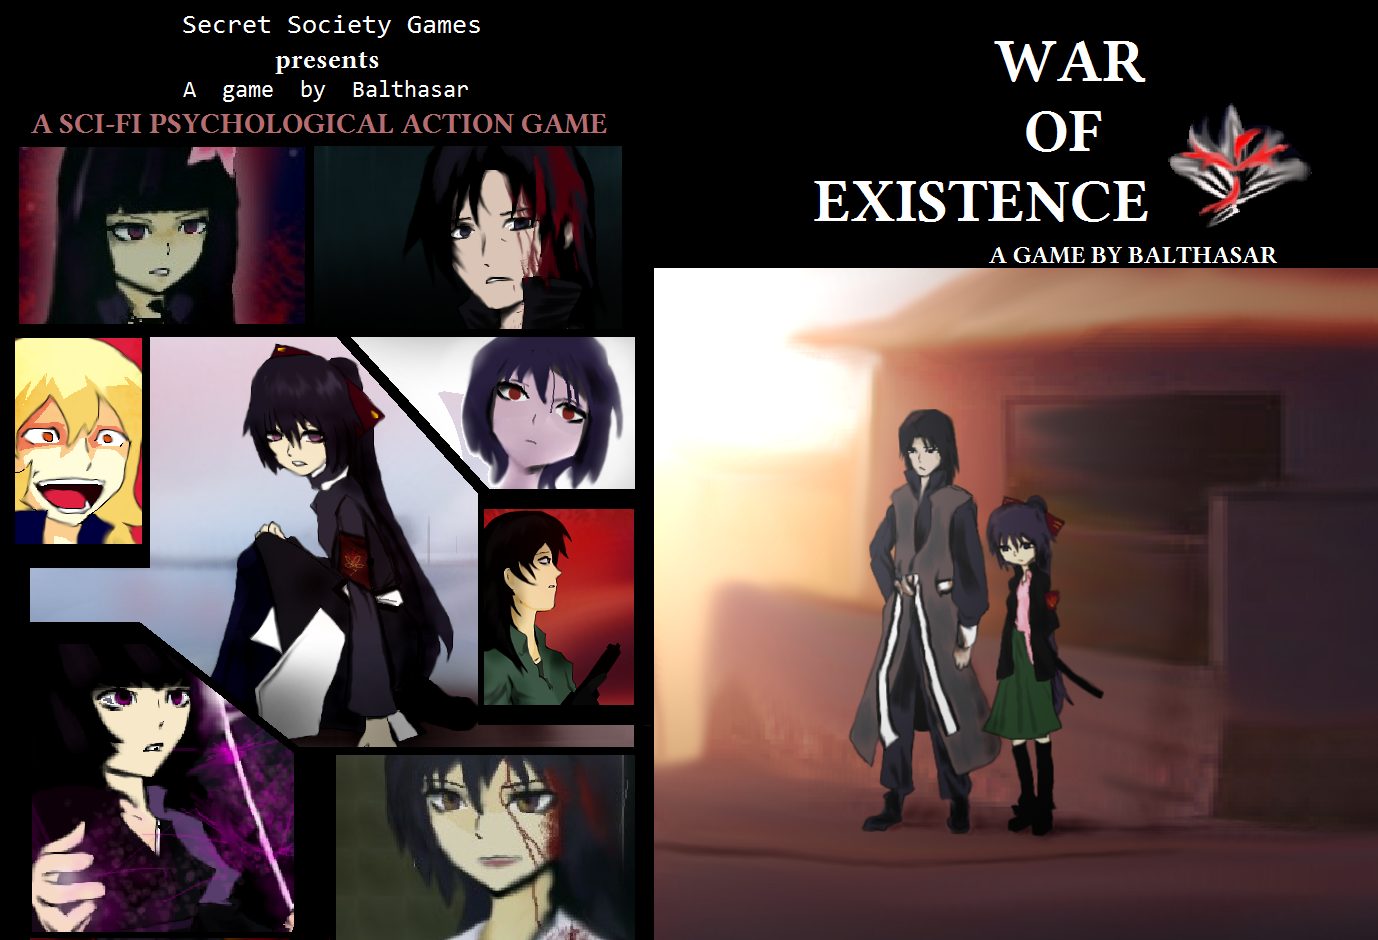 War of Existence